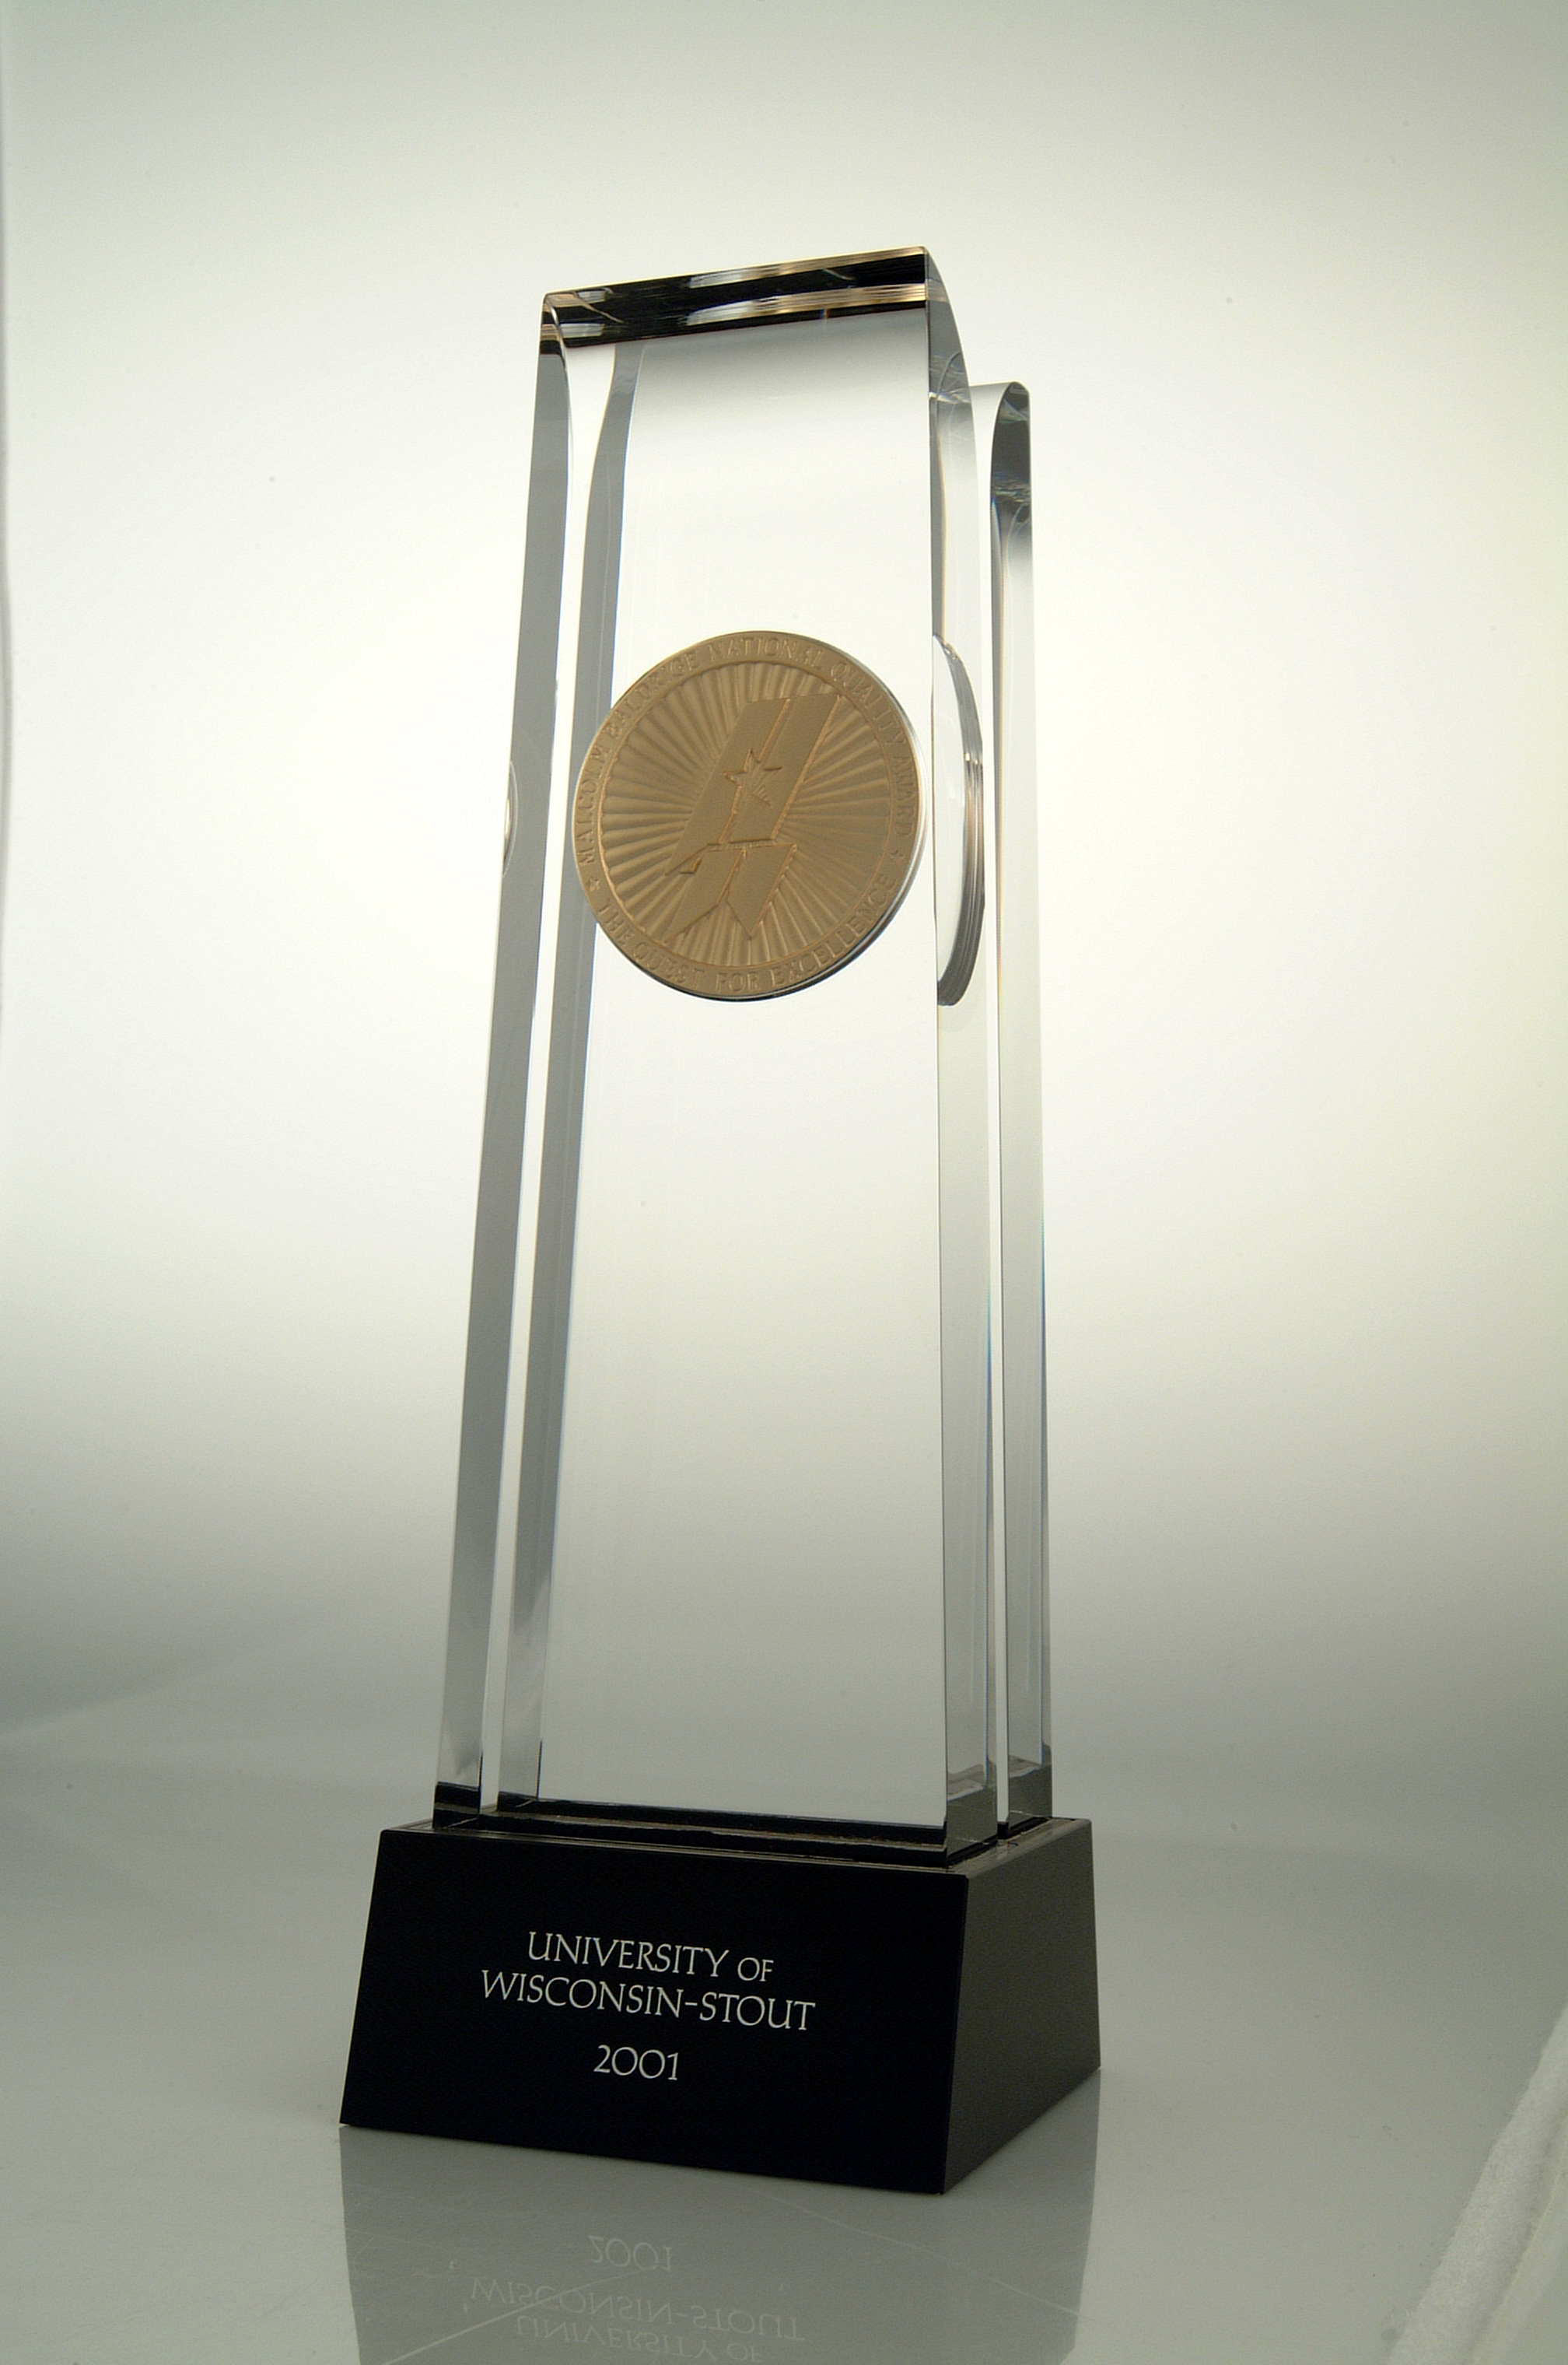 The Malcolm Baldrige Award